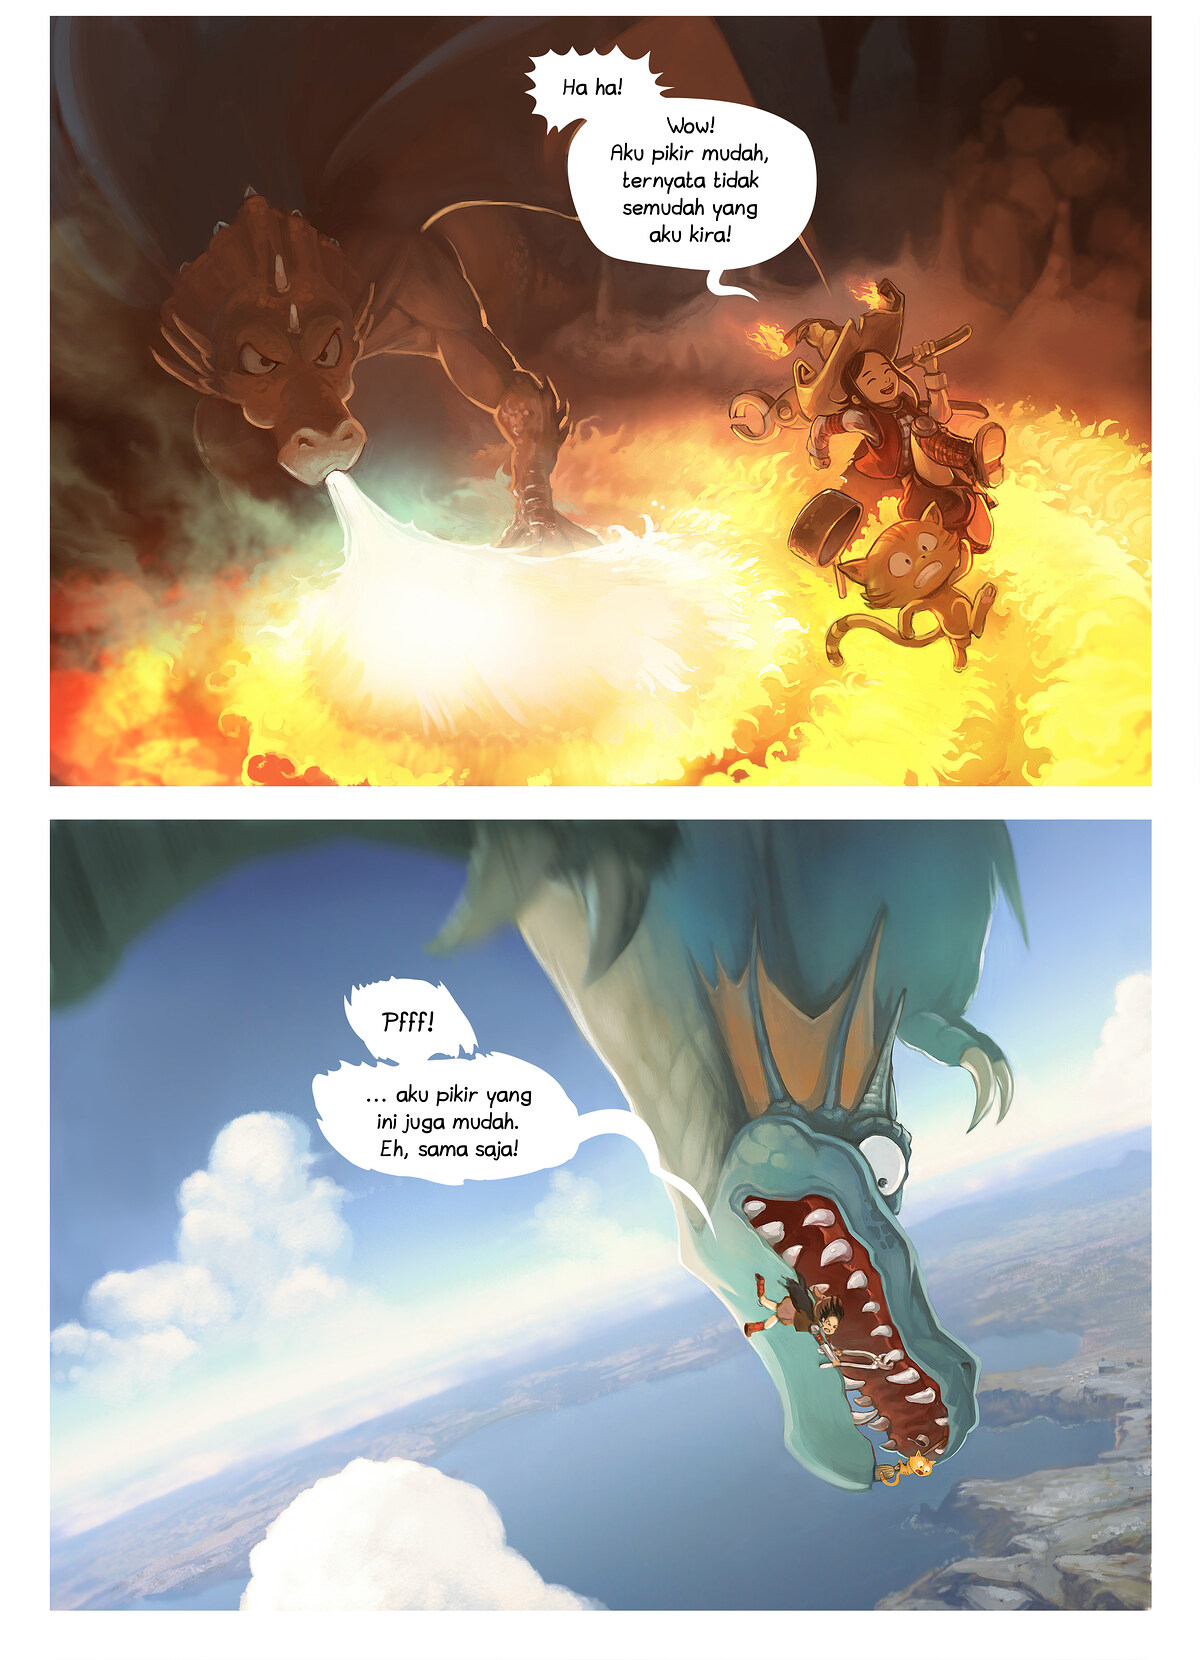 A webcomic page of Pepper&Carrot, episode 14 [id], halaman 3